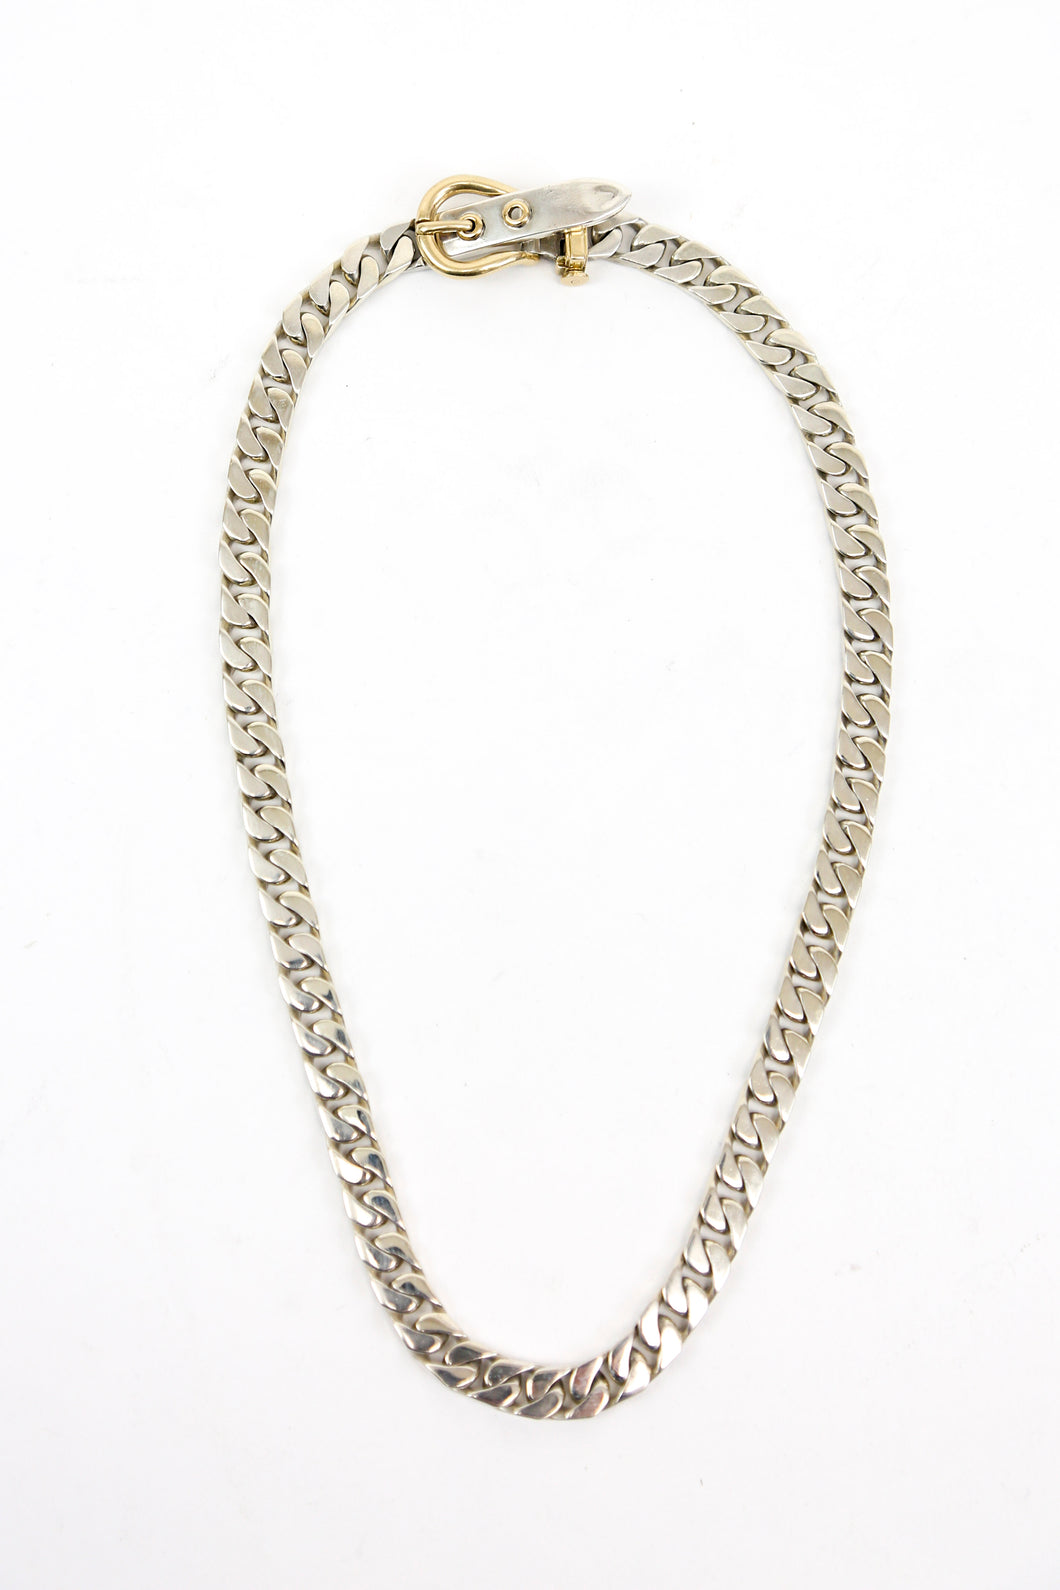 Hermès Sterling Silver and 18k Gold Boucle Sellier Necklace 16